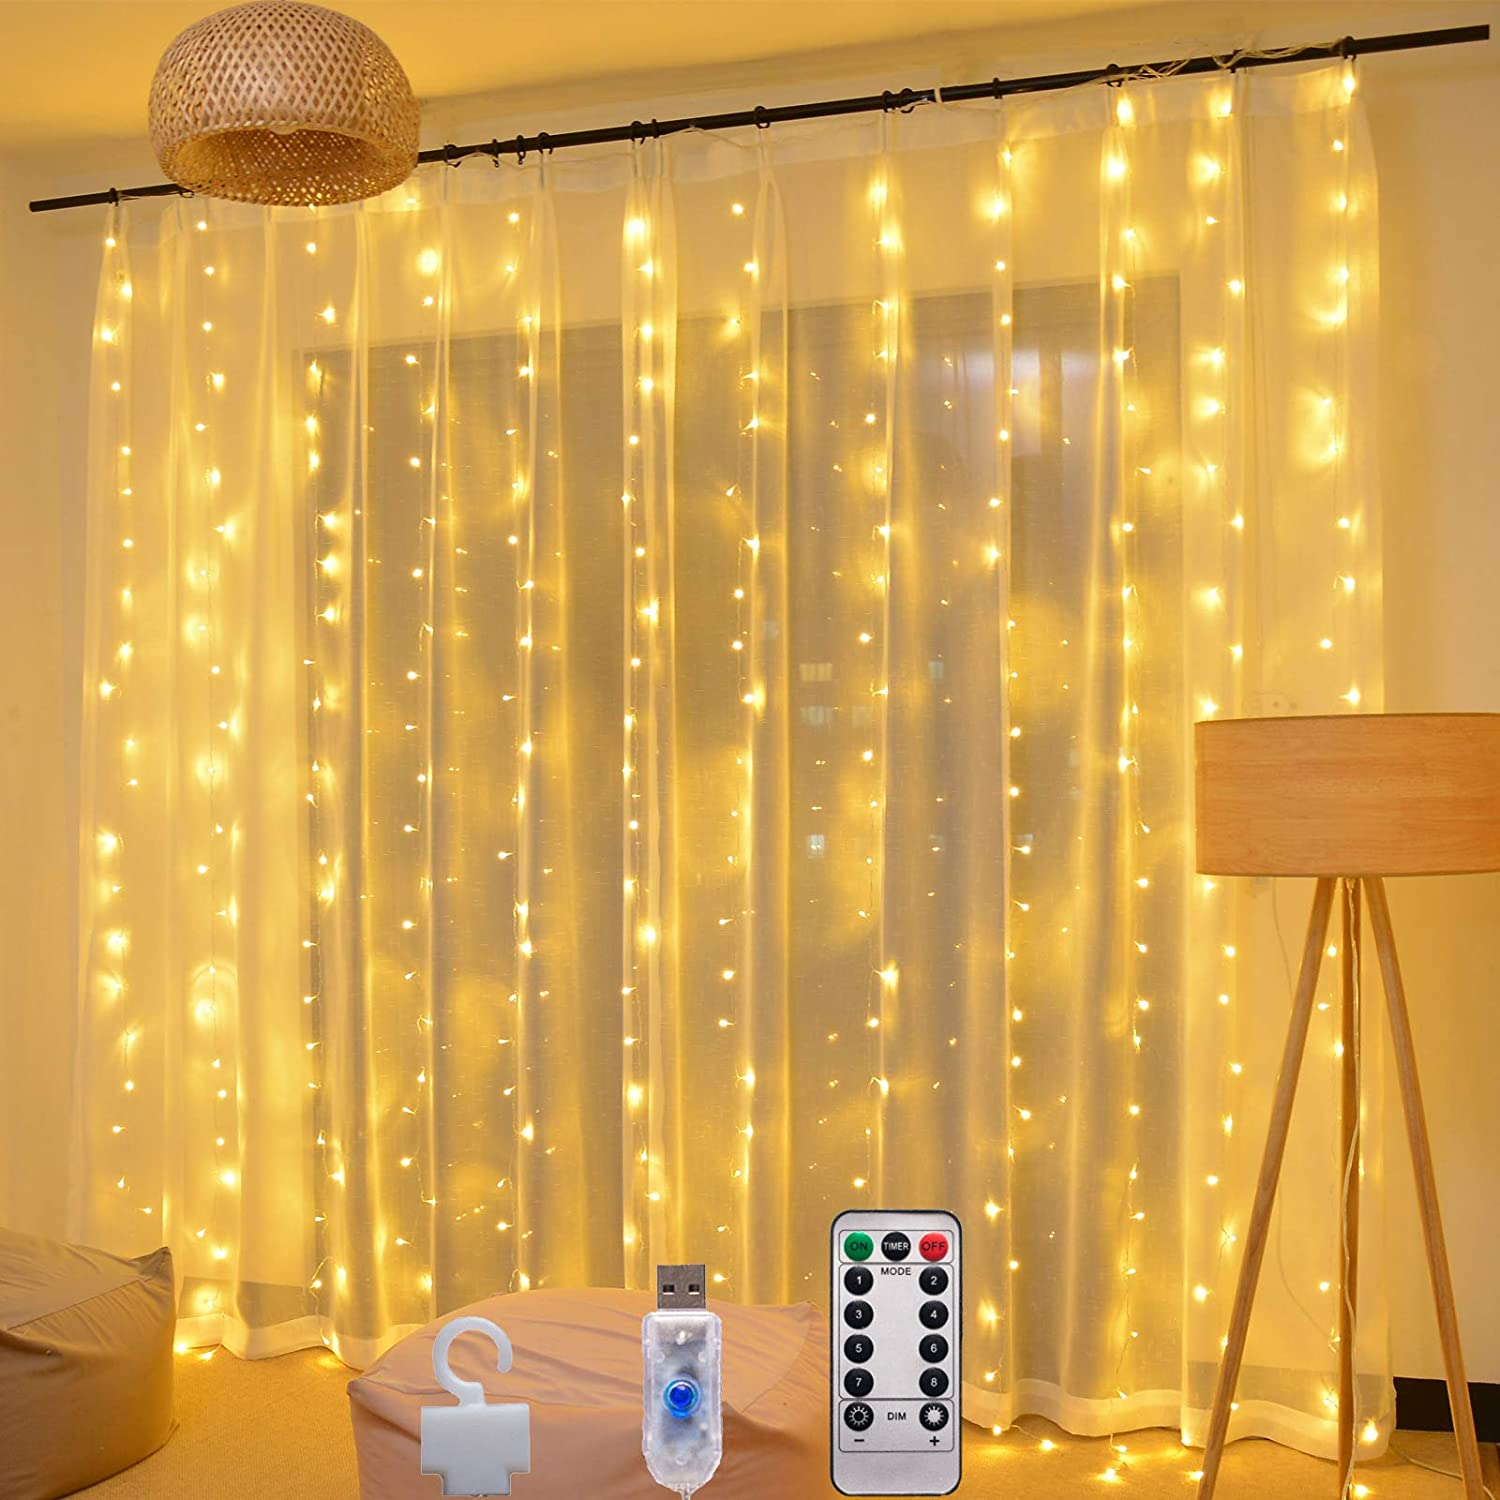 Ecurfu Window Curtain String Lights, 300 LED Fairy Light, Remote, 8 Lighting Modes for Christmas, Wedding, Bedroom Wall Party Indoor Outdoor Decor, 9.8 x 9.8 ft Warm White